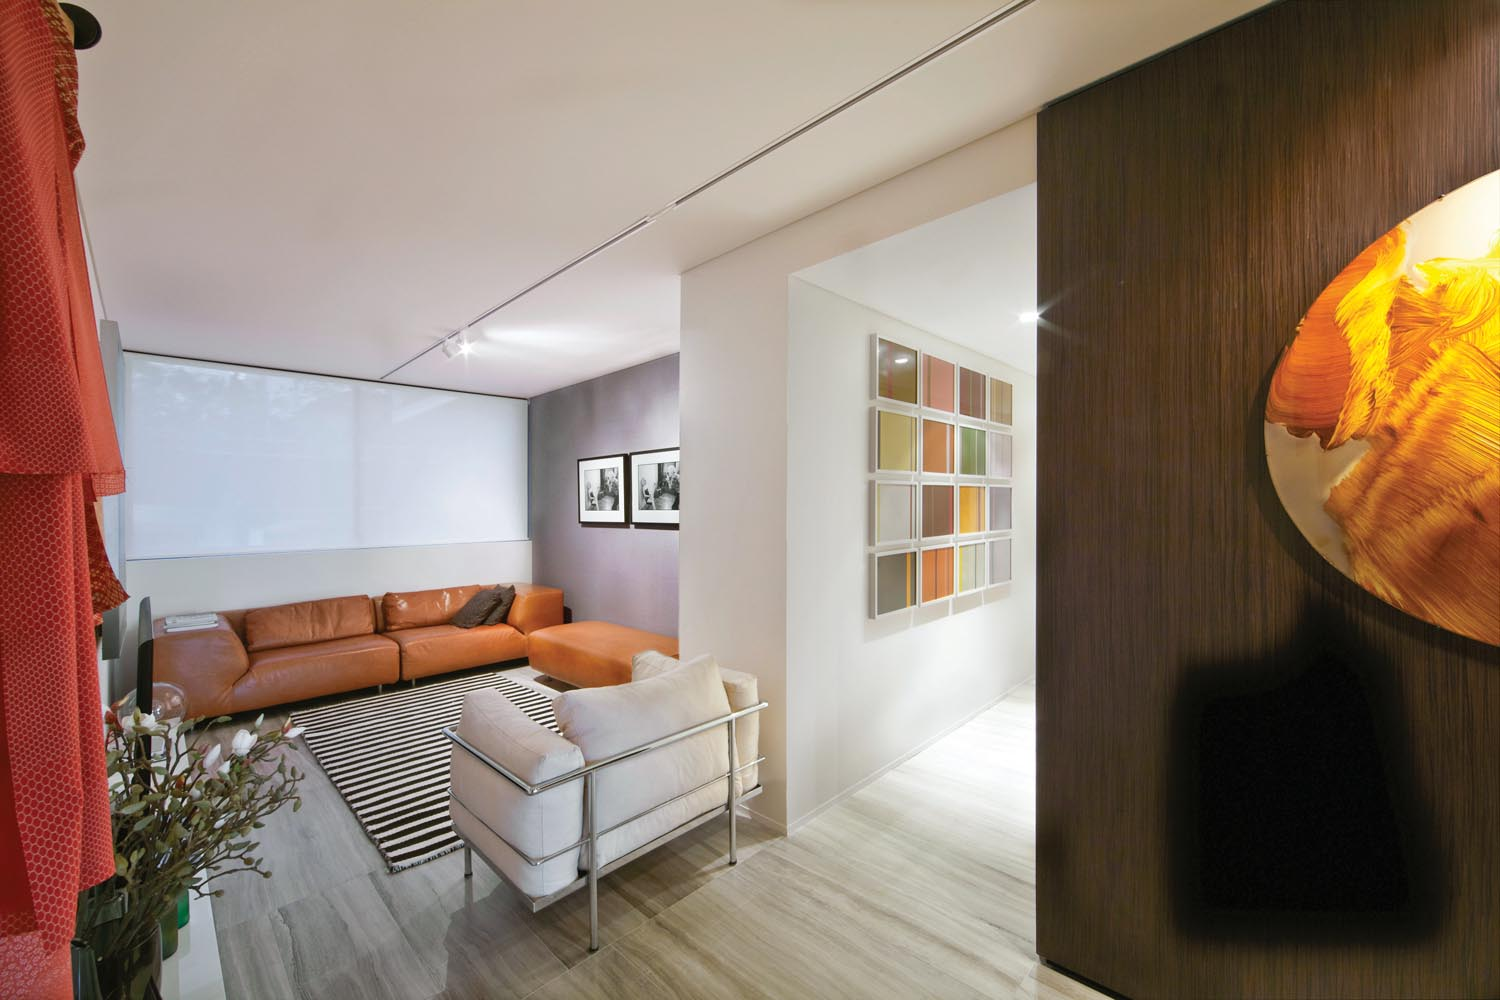 Displaying a varied art collection is a great way to liven up a space as well as create personality